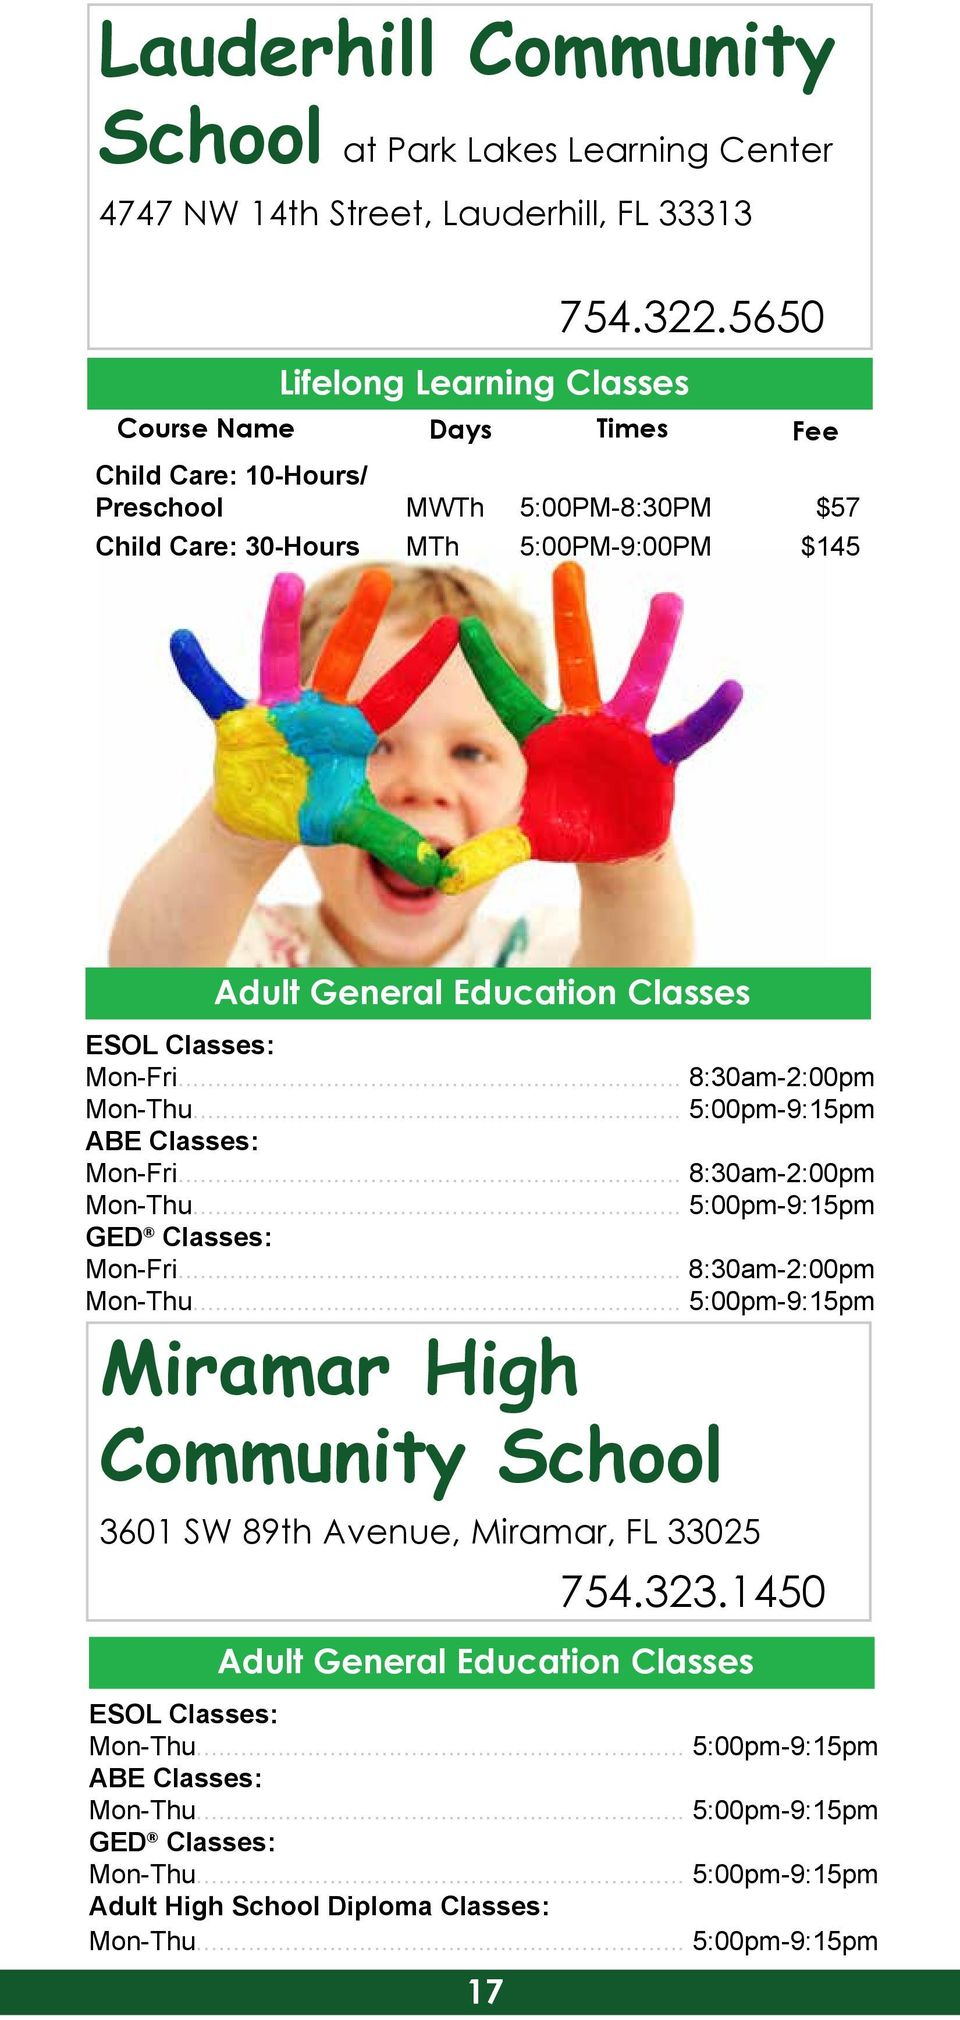 5650 Child Care: 10-Hours/ Preschool MWTh 5:00PM-8:30PM $57 Child Care: 30-Hours MTh 5:00PM-9:00PM